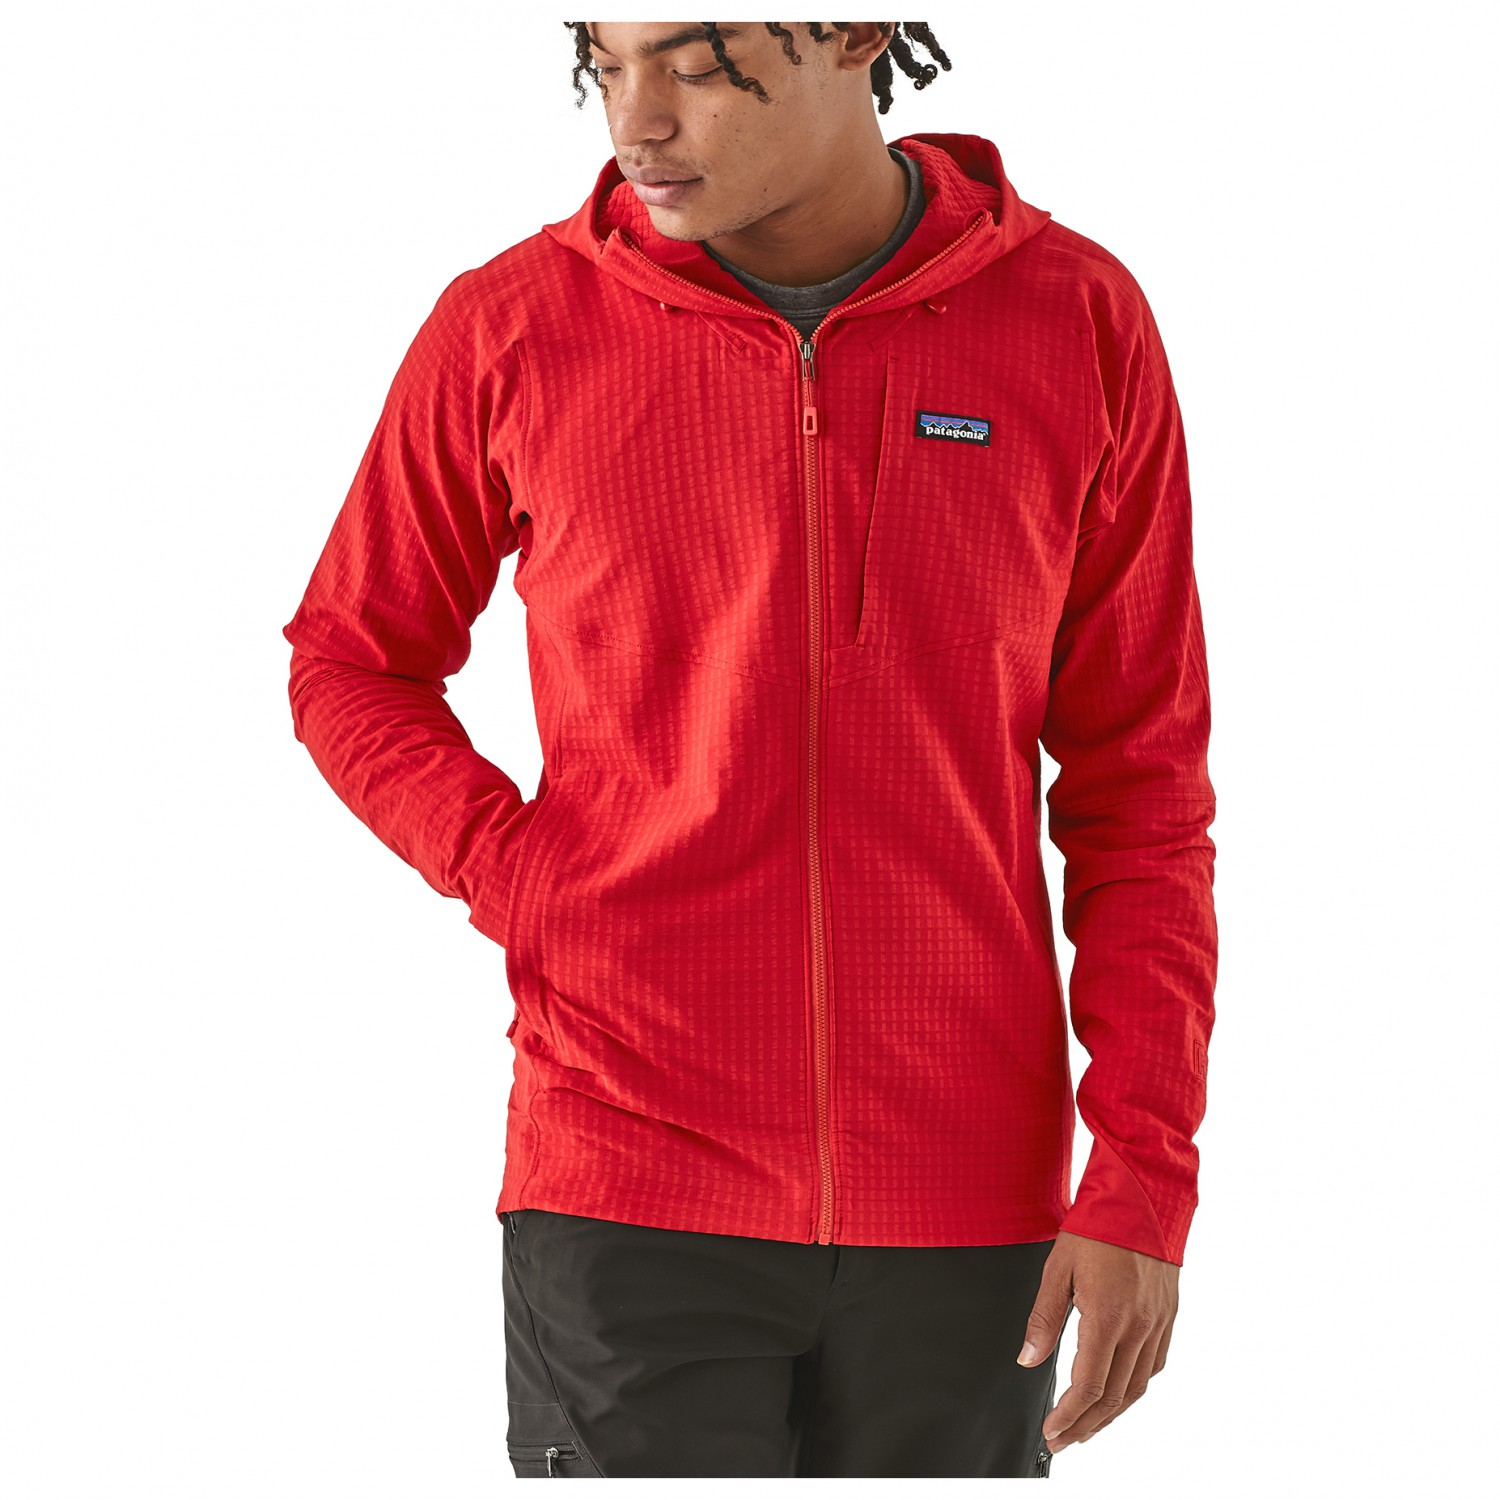 Patagonia R1 TechFace Hoody Review: The best hoodie for spring Patagonia R1 TechFace Hoody Review: The best hoodie for spring new photo